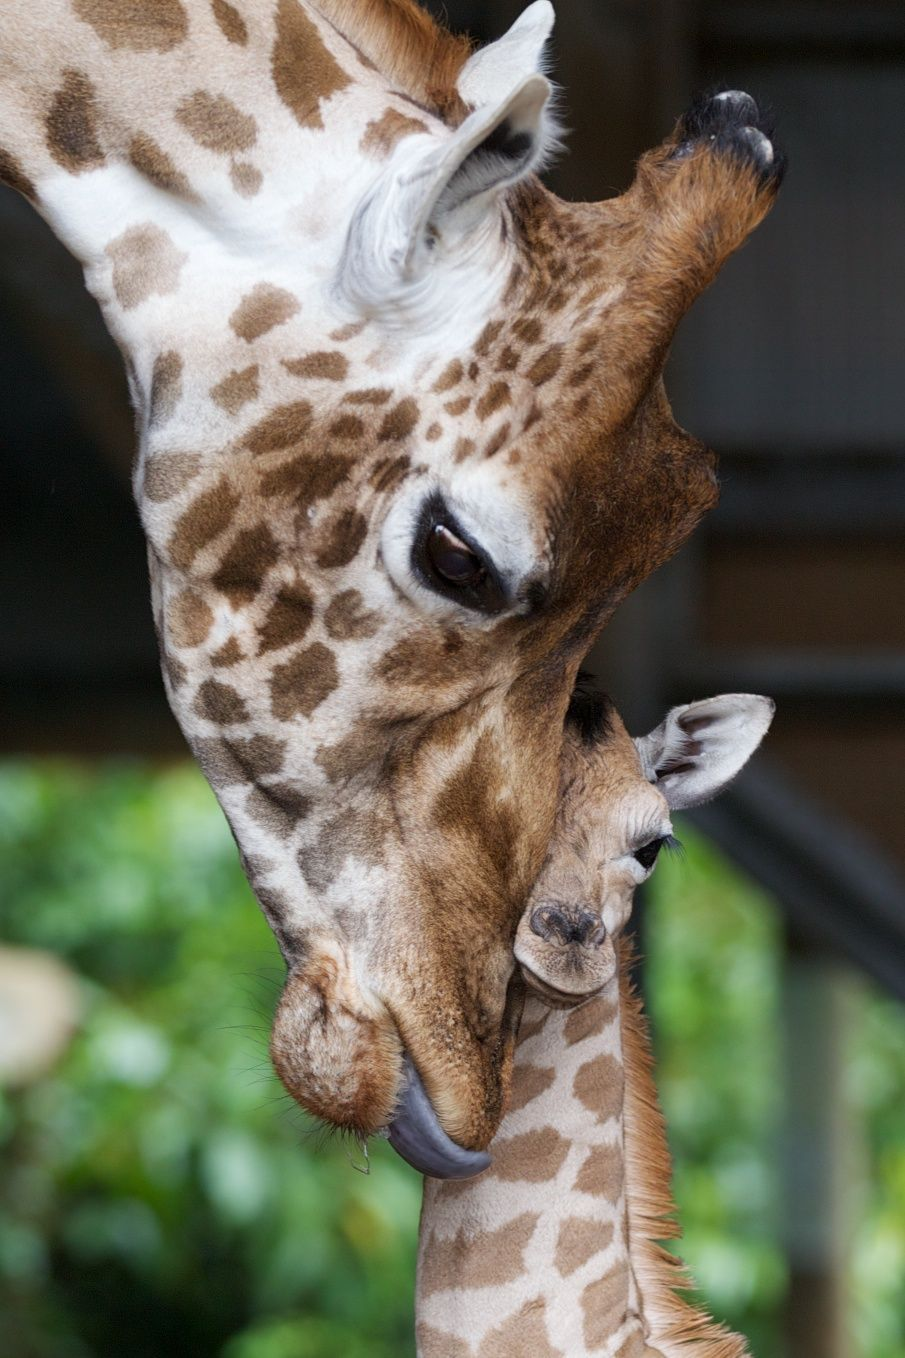 Giraffes spend much of their day feeding so nature has provided them with dark blue tongues to prevent them from getting sunburned!